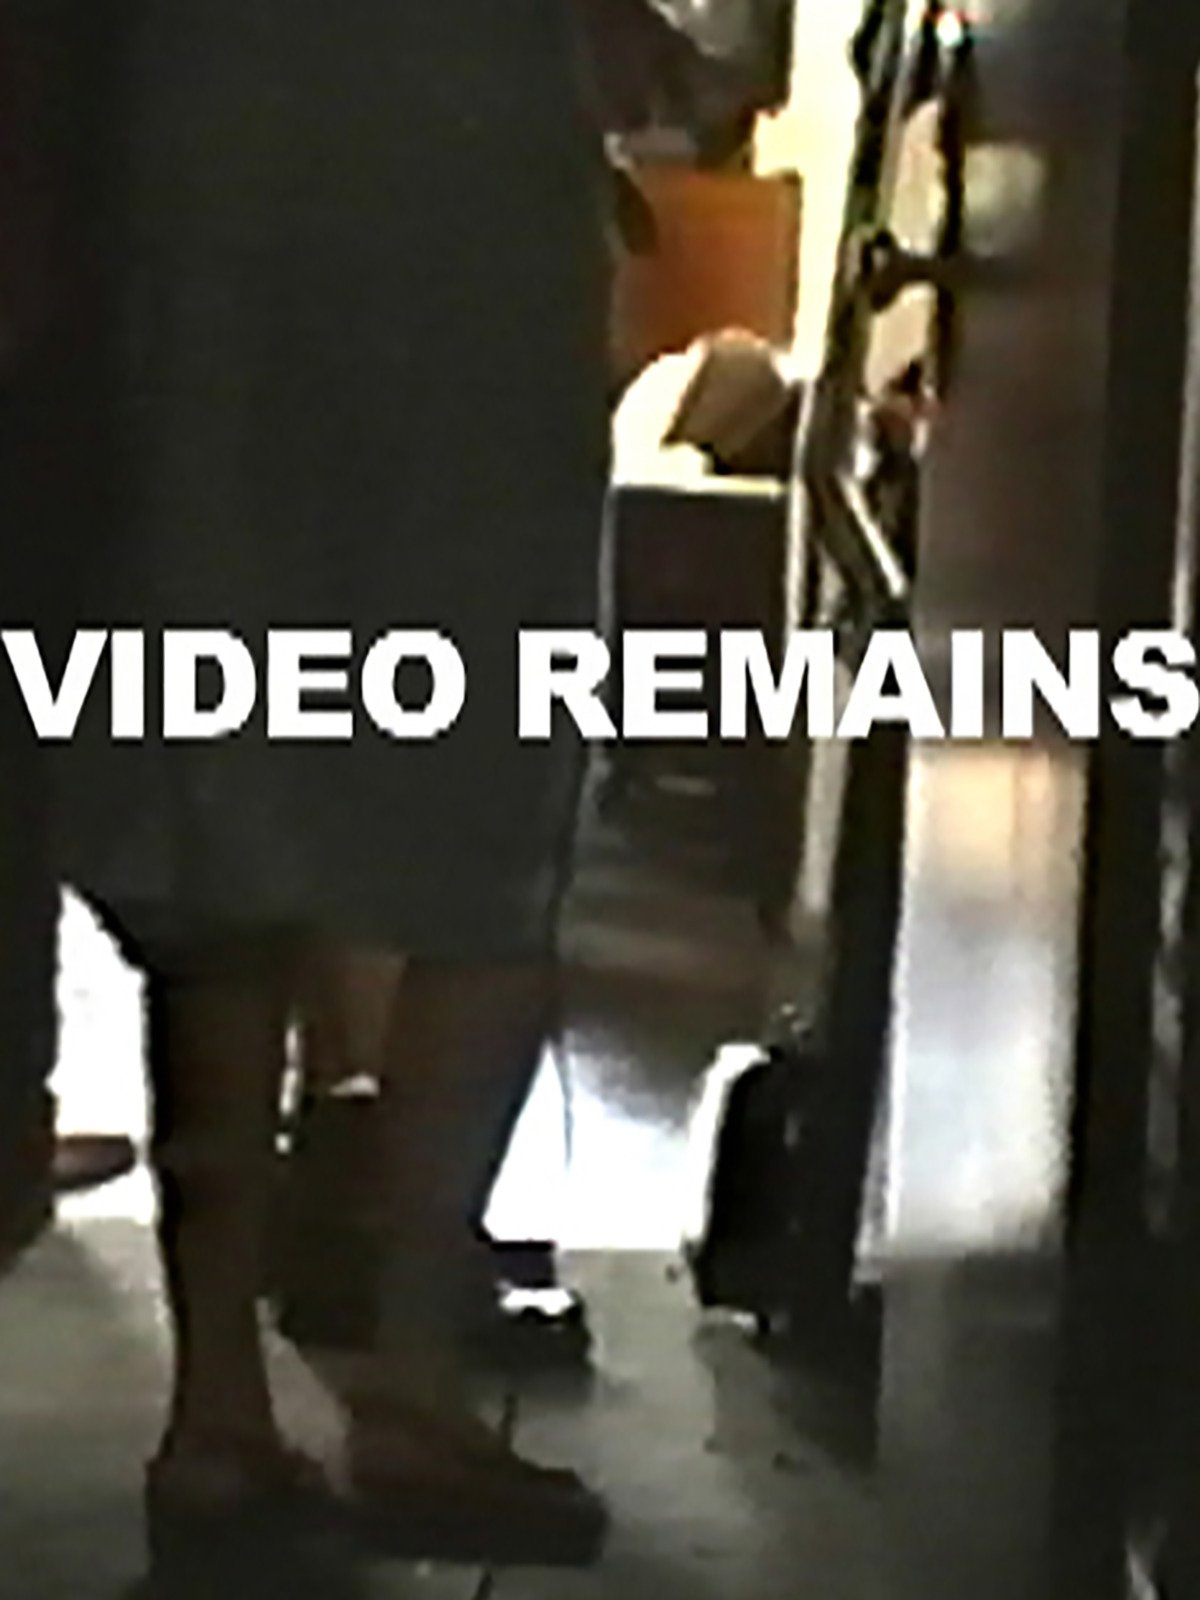 Video Remains